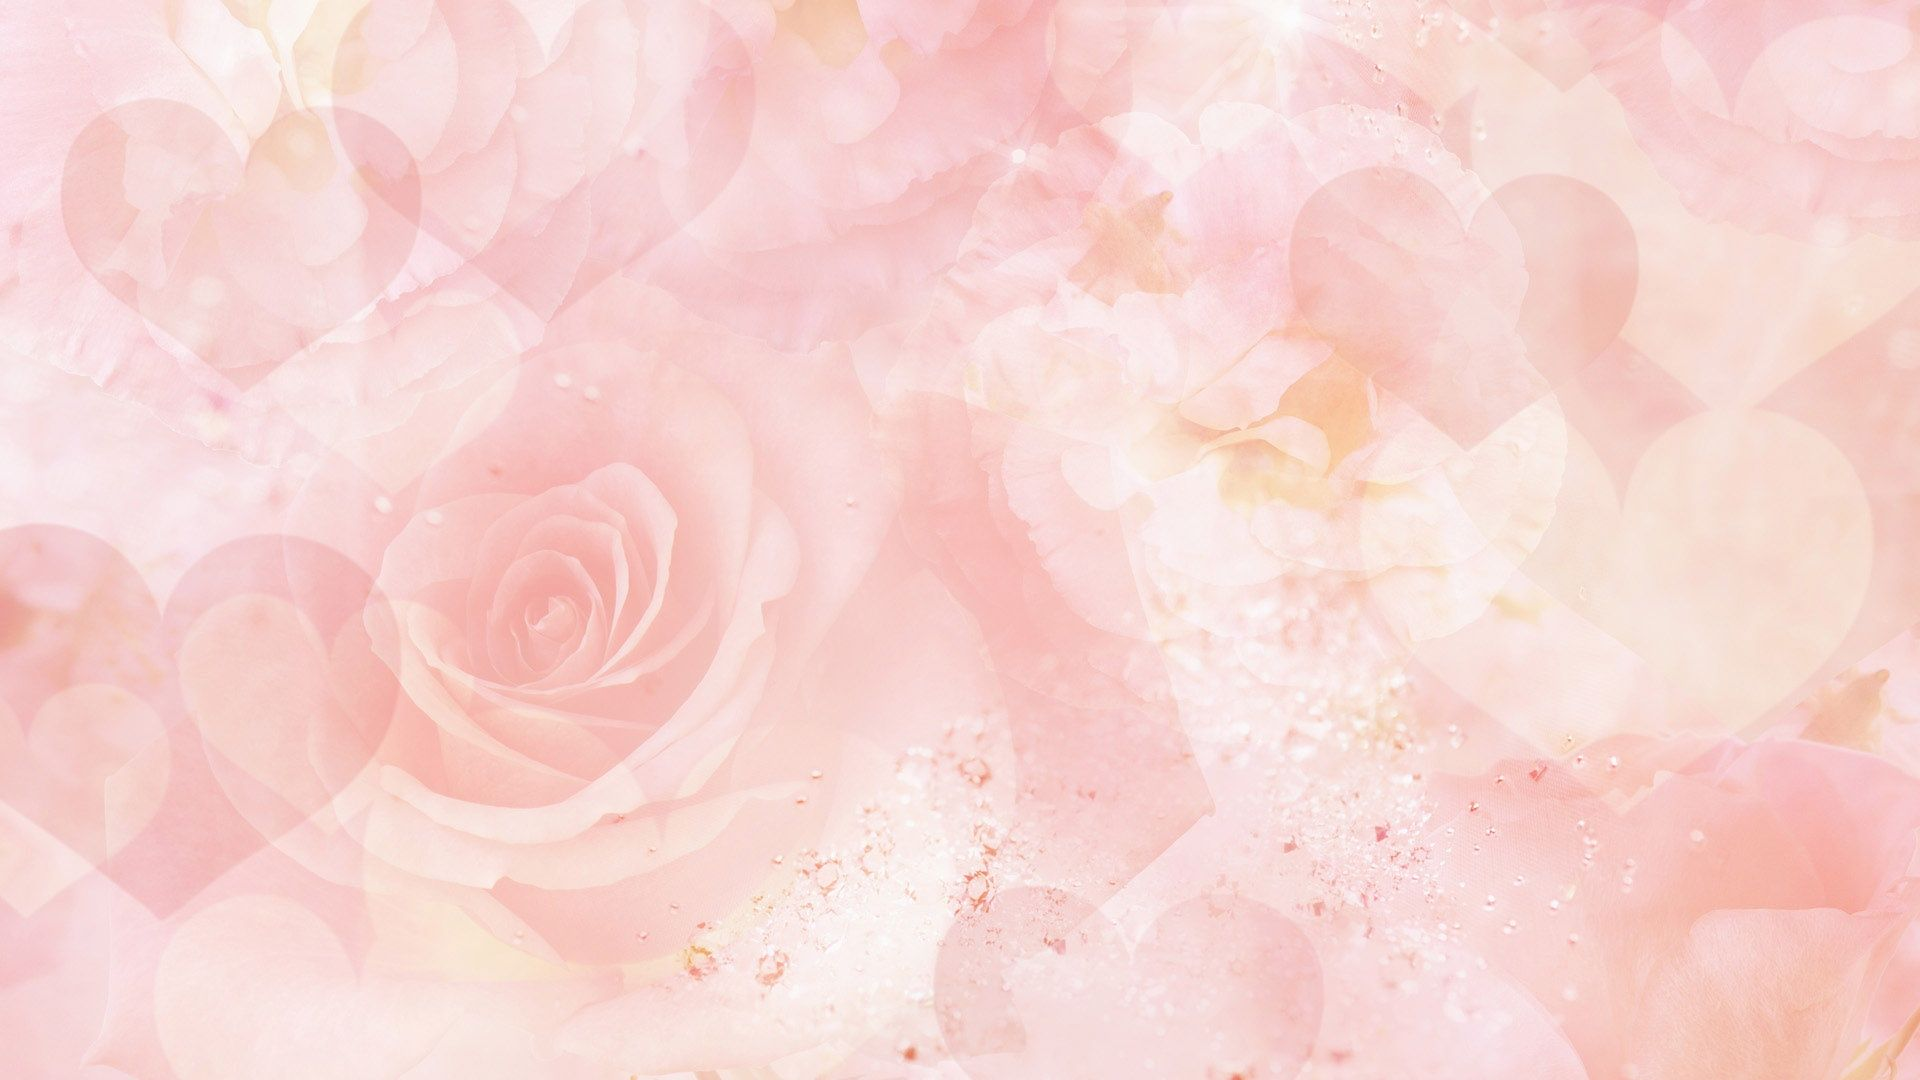 1920x1080 Background Flower 9 Hd Wallpapers 1080p Pink Flowers